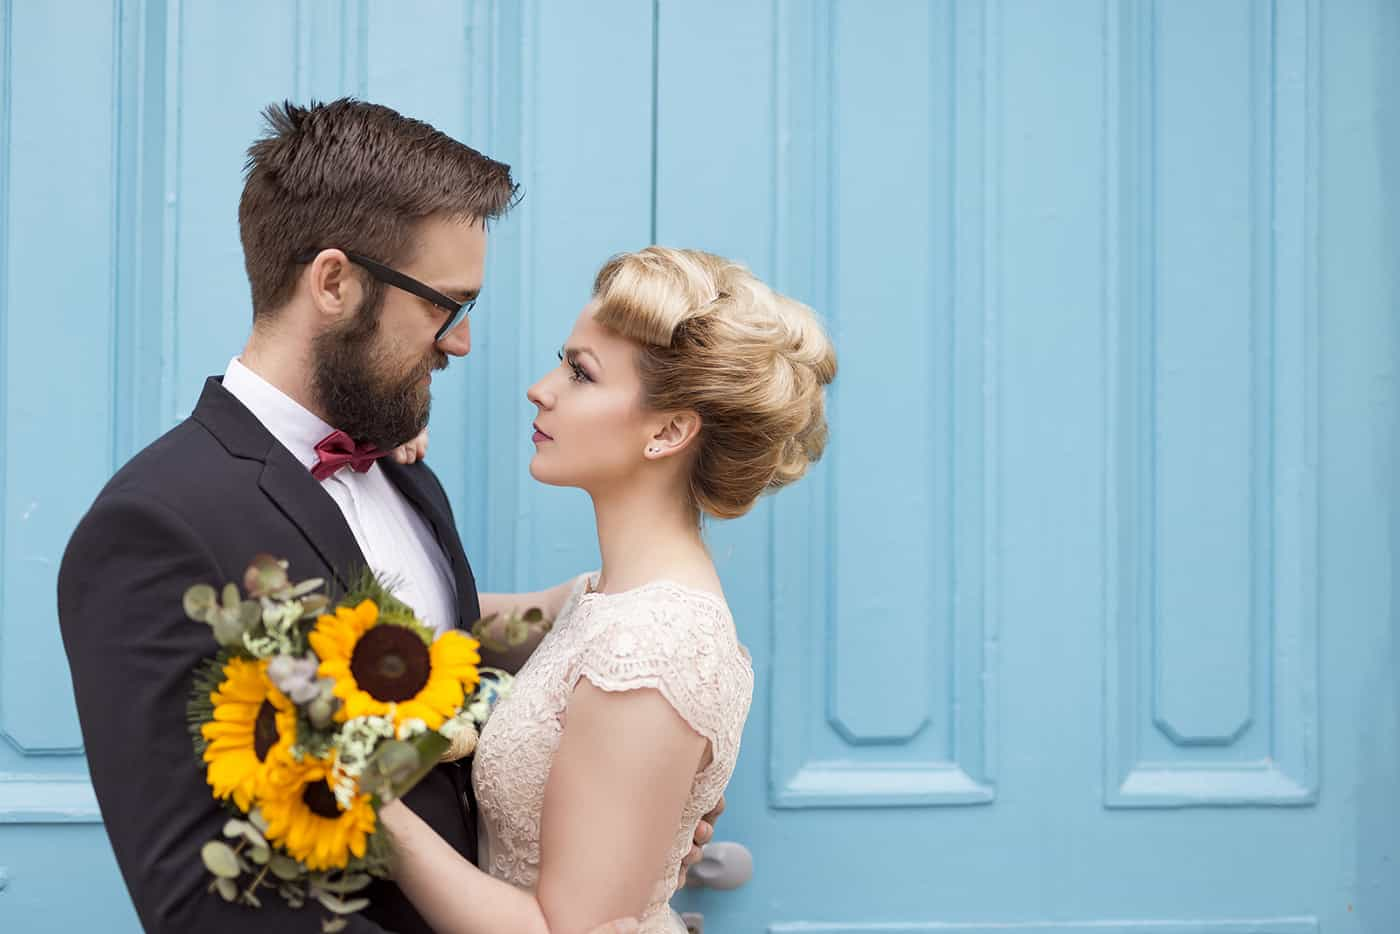 Things Millenials Must Consider Before Marriage (Past Generations Didn't Have to Deal With)